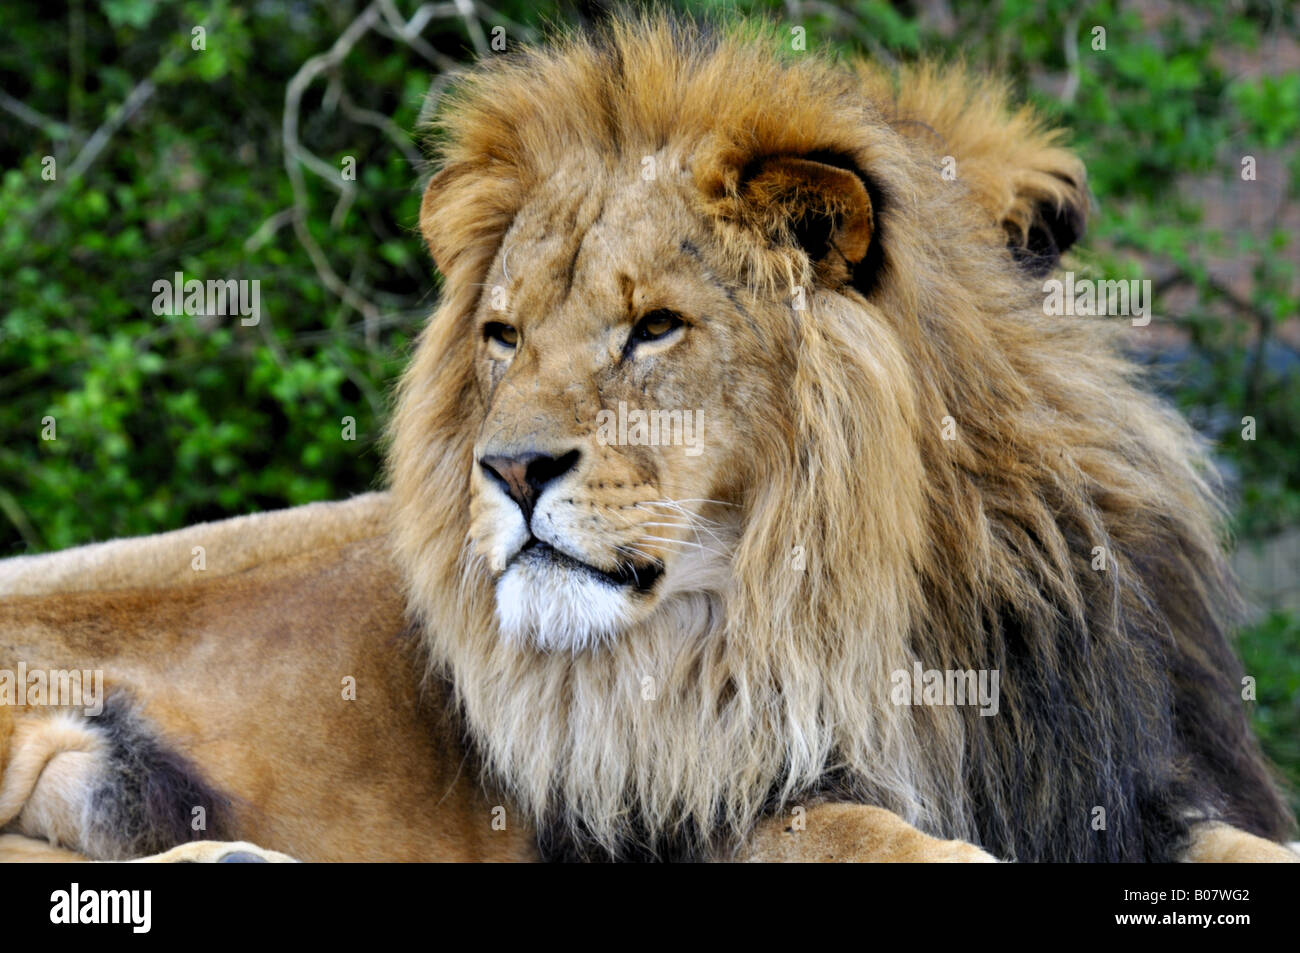 Lion (Panthera leo) - Stock Image